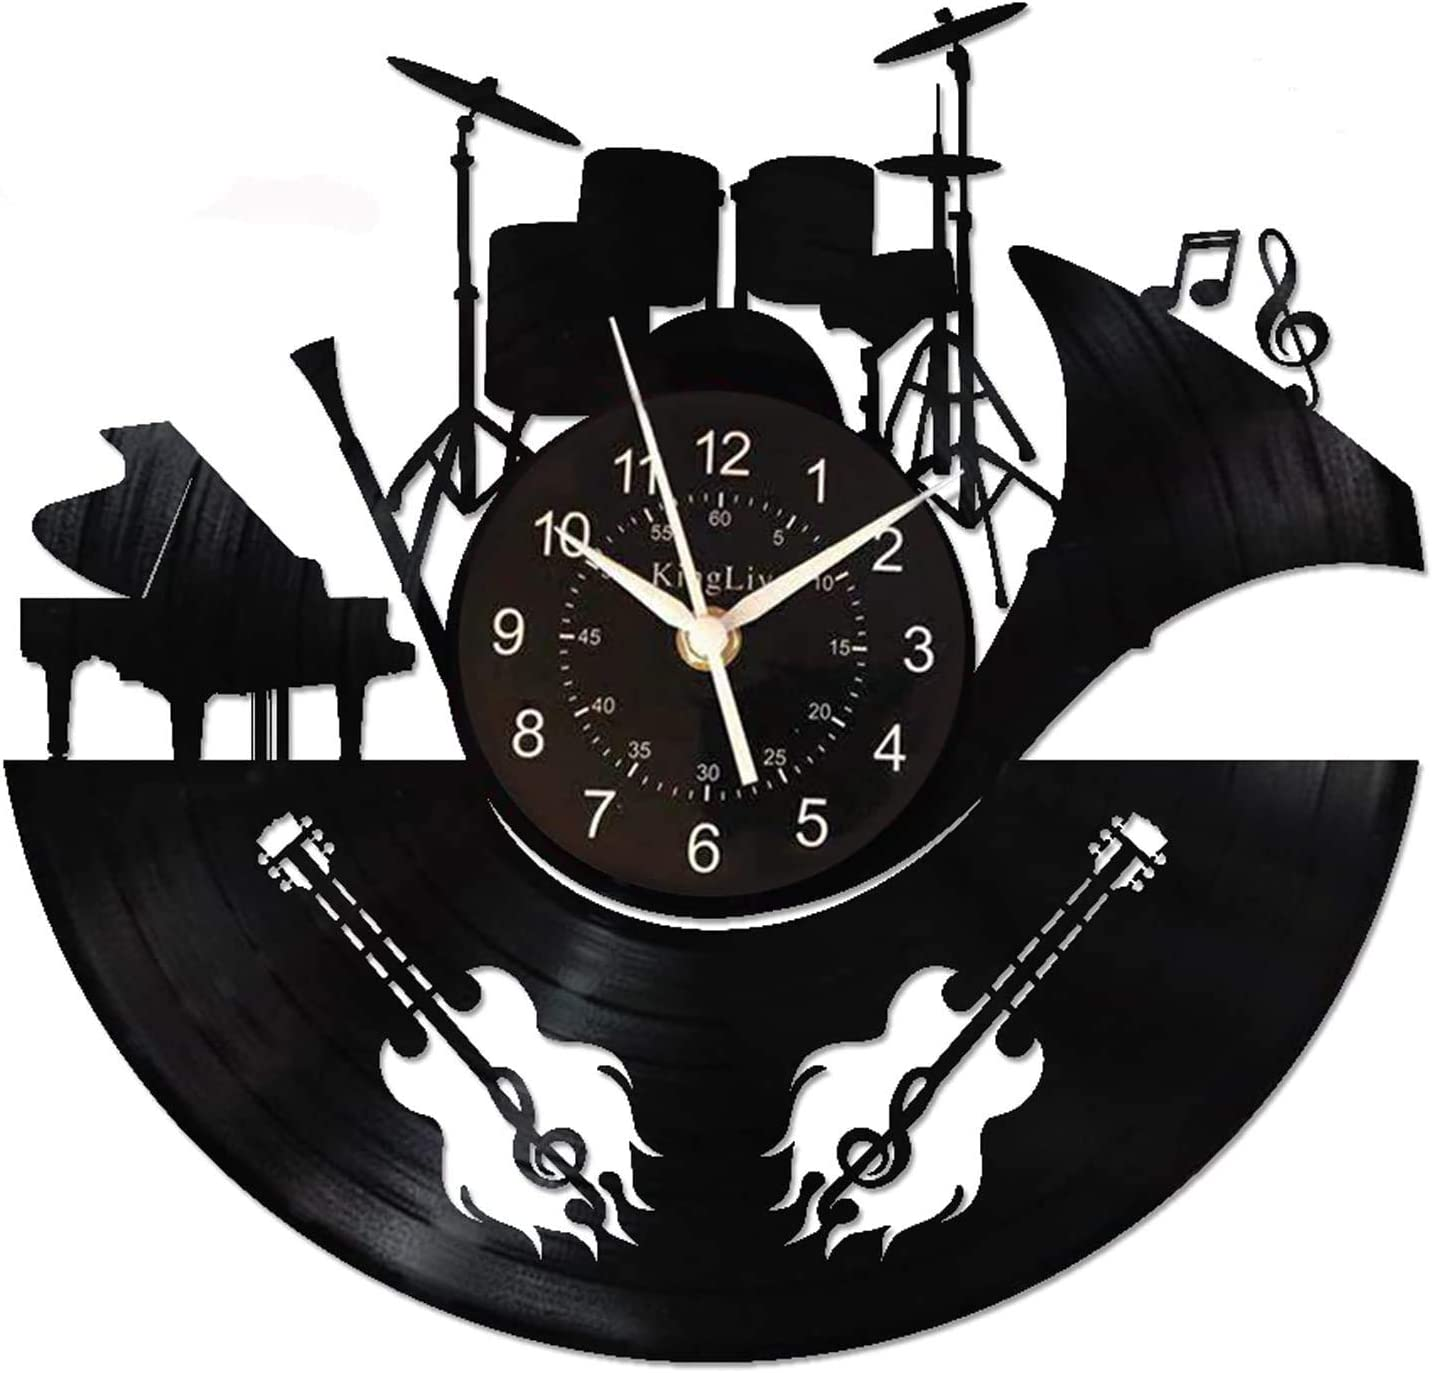 KingLive Music Instrument Black Wall Clock 12 Inches(30cm) Home Guitar Decor Guitar Drums Wall Art - Drummer Gifts for Musicians Men (Music C)